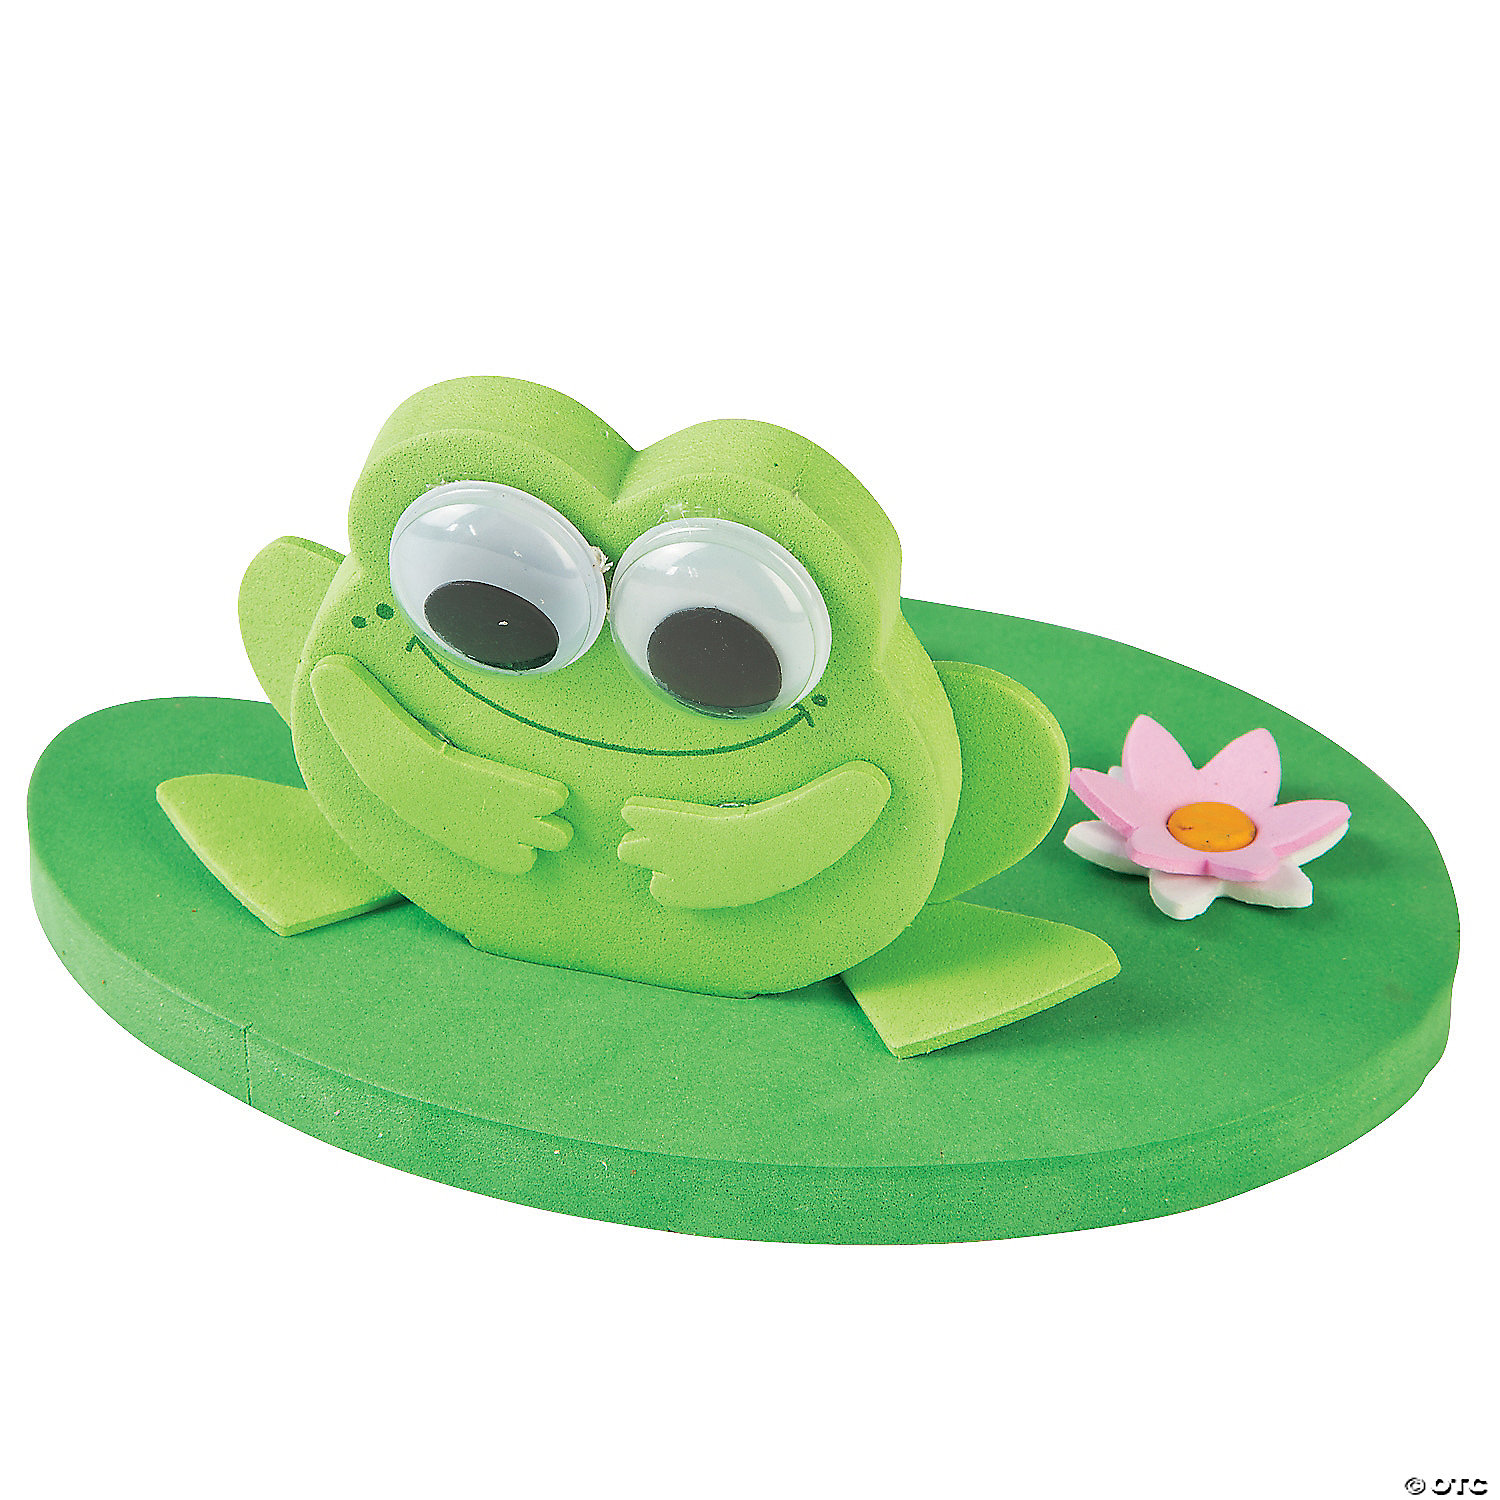 Frog Lily Pad Craft 3d Floating Frog on a Lily Pad